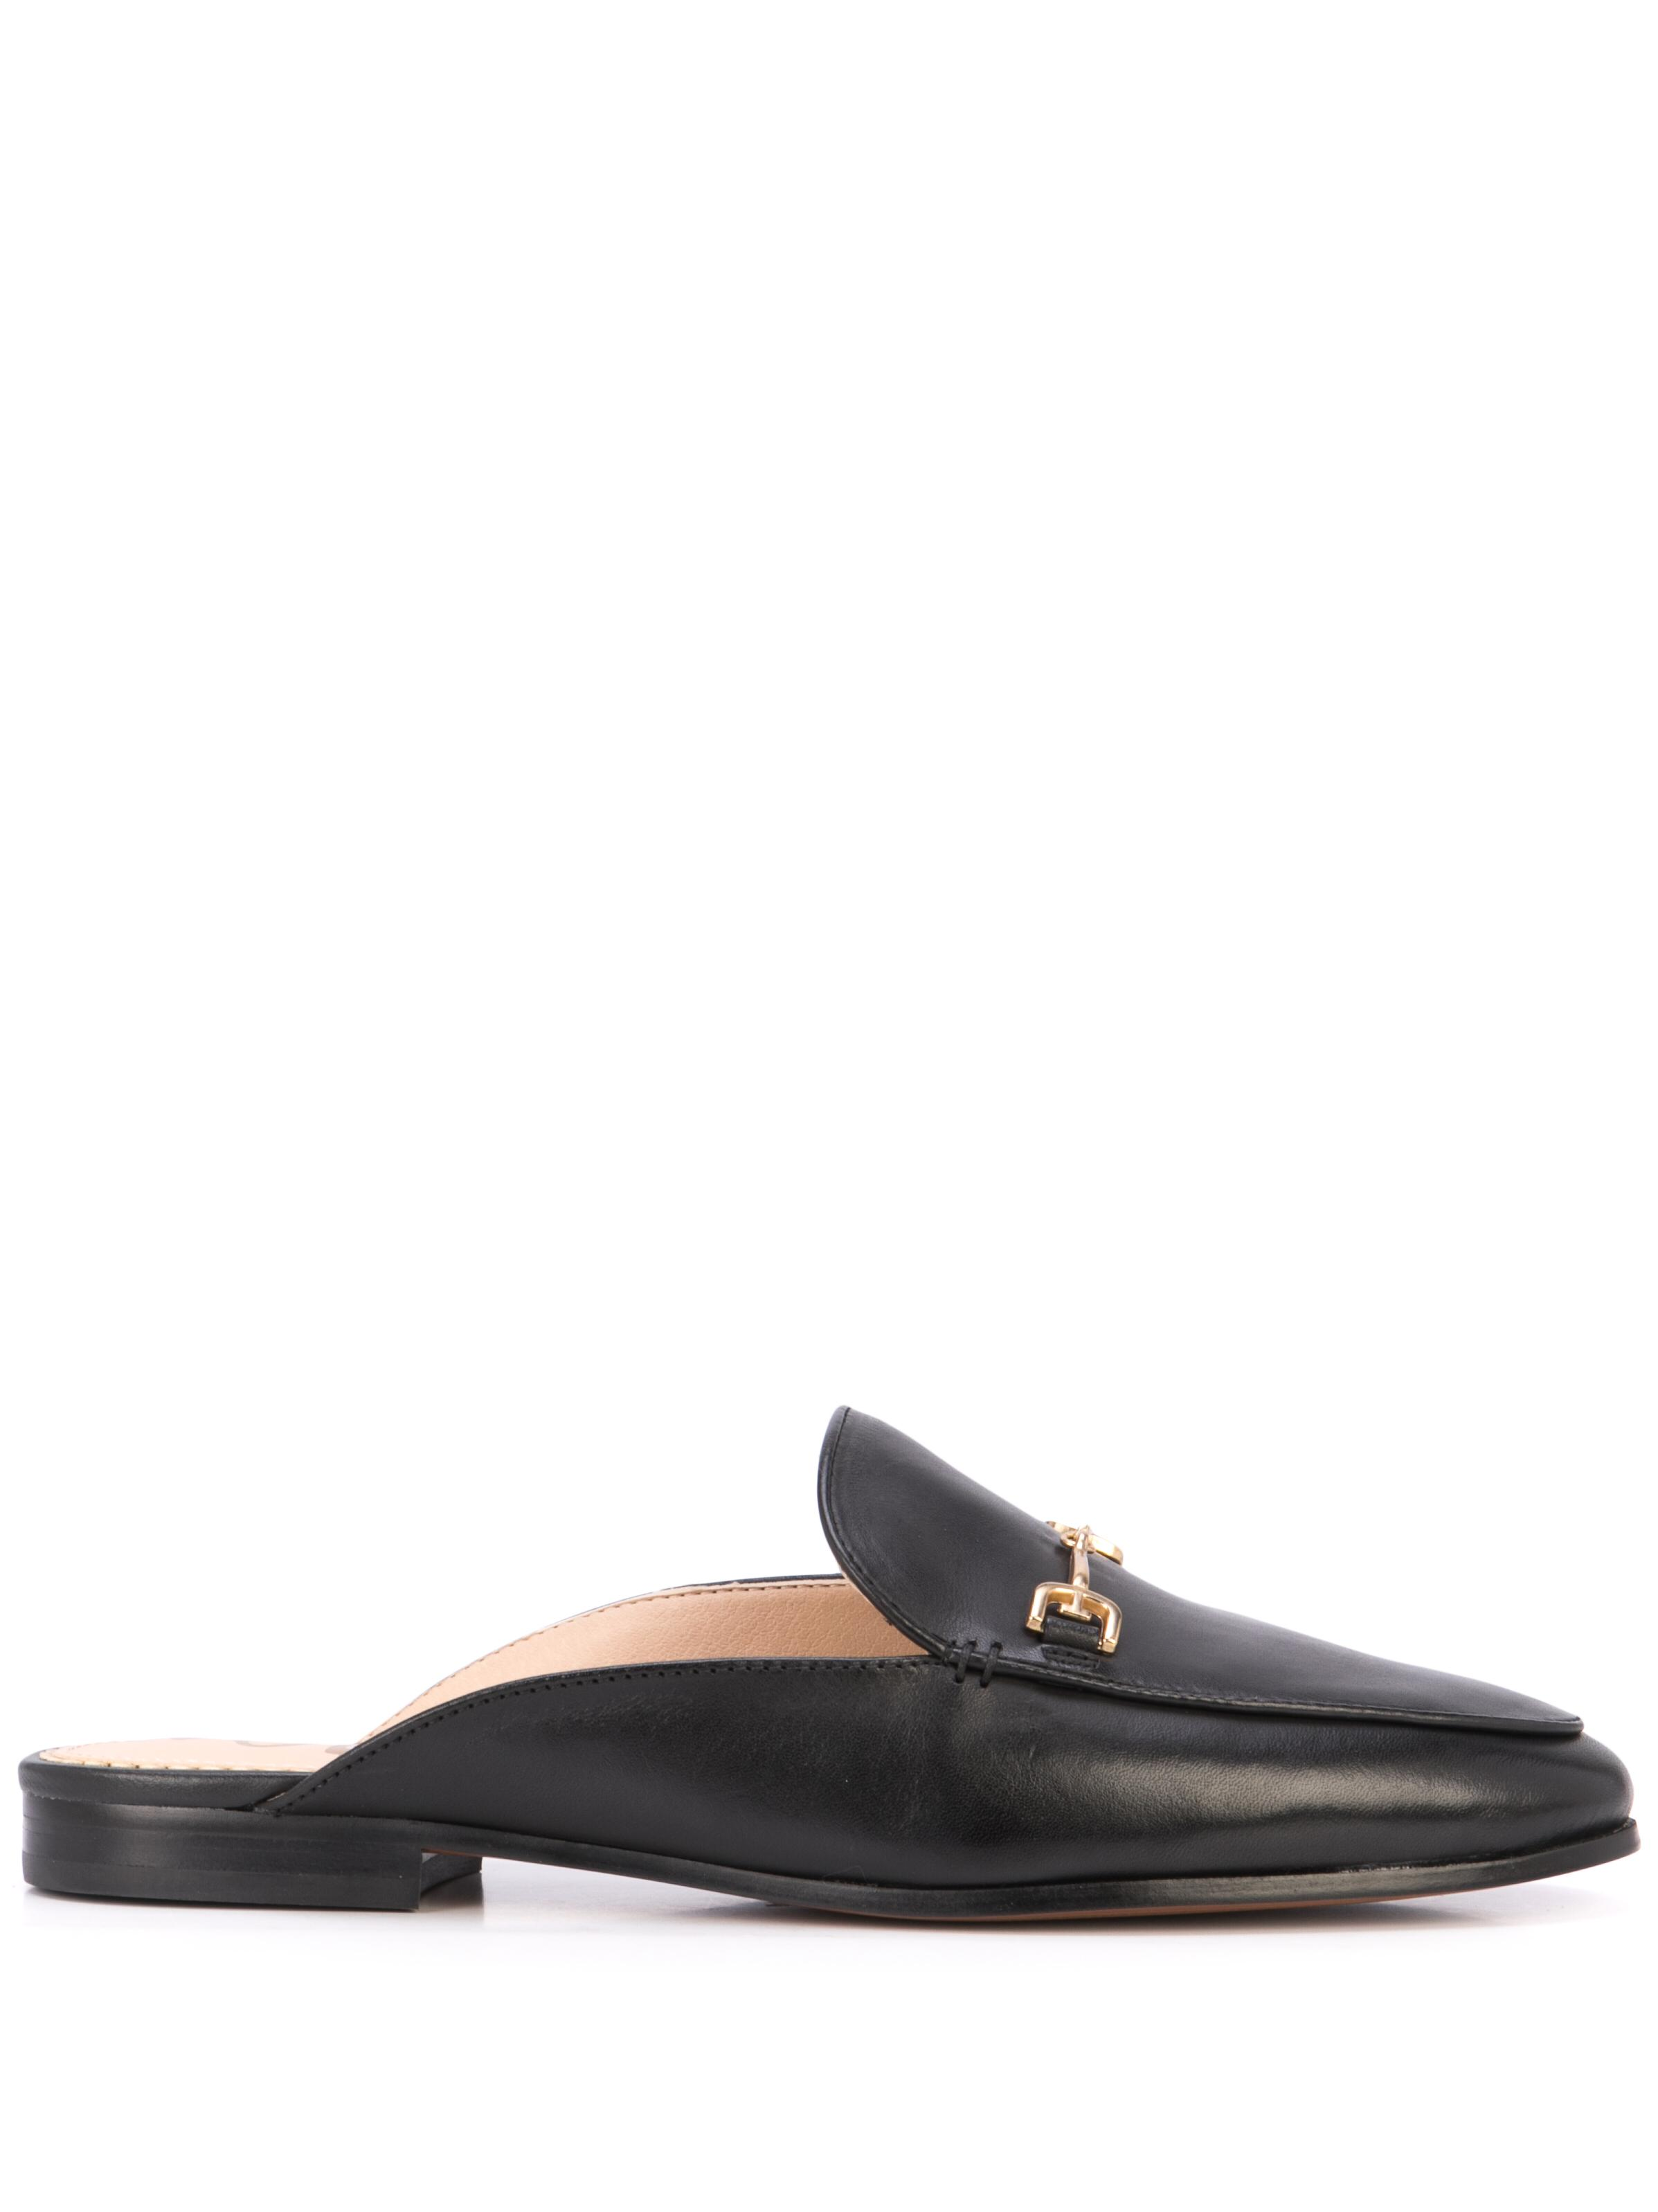 Leather Flat Backless Mule